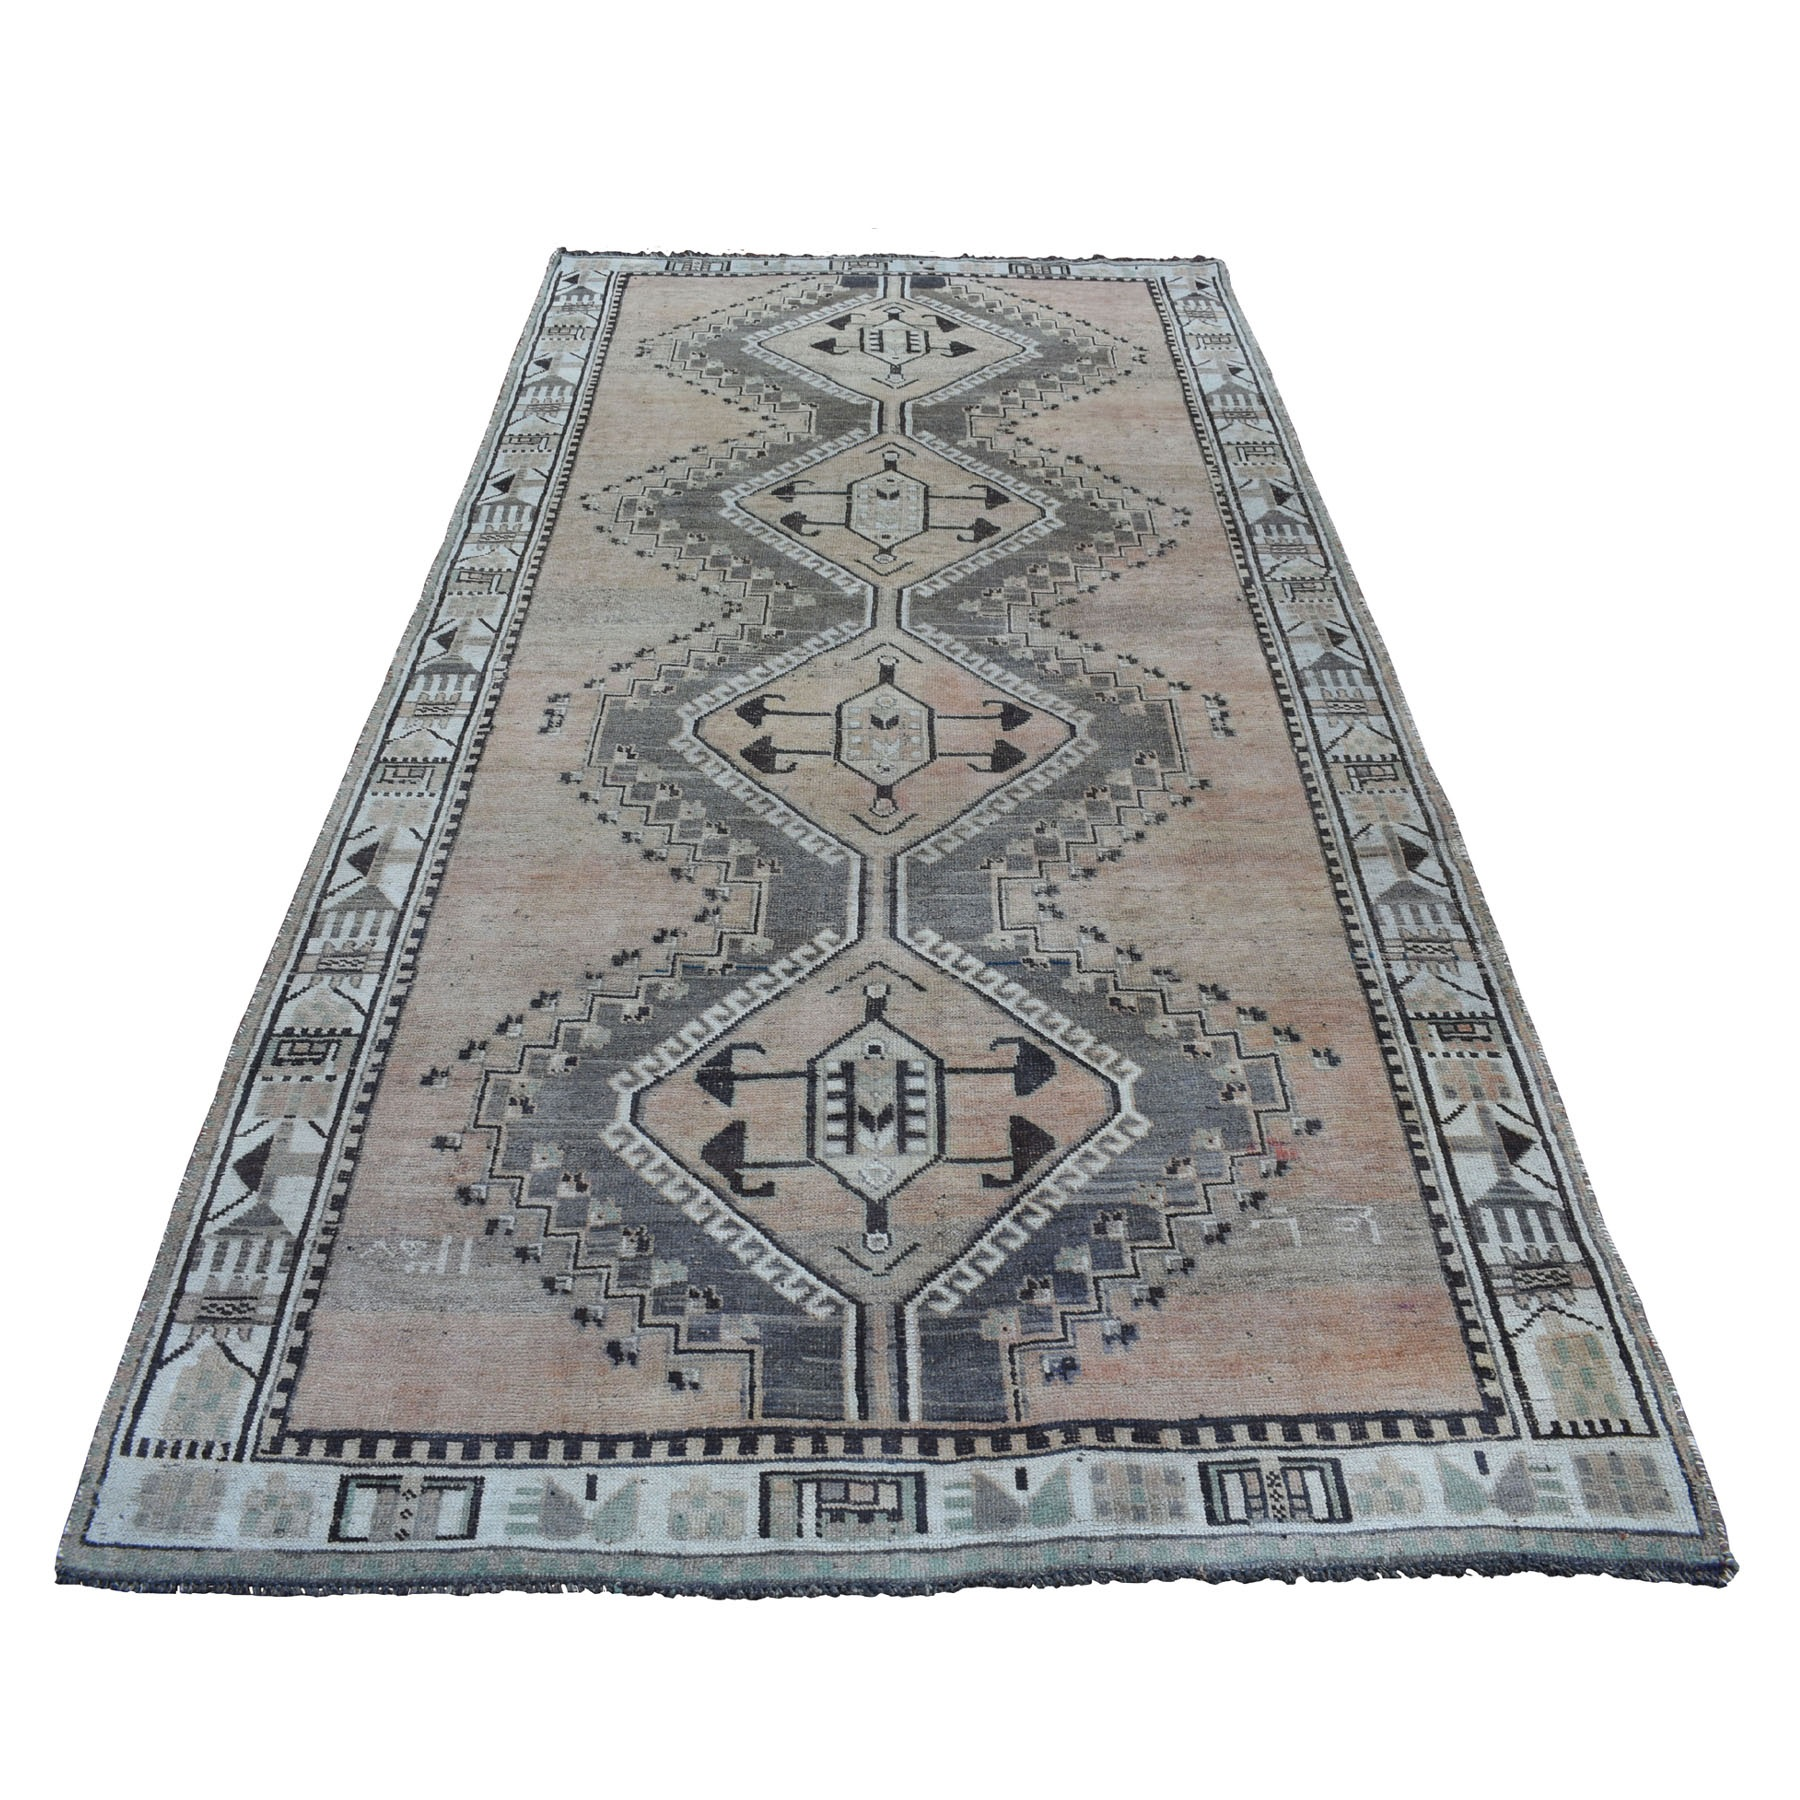 5'X10' Vintage And Worn Down Distressed Colors Persian Qashqai Wide Runner Hand Knotted Bohemian Rug moaed07a